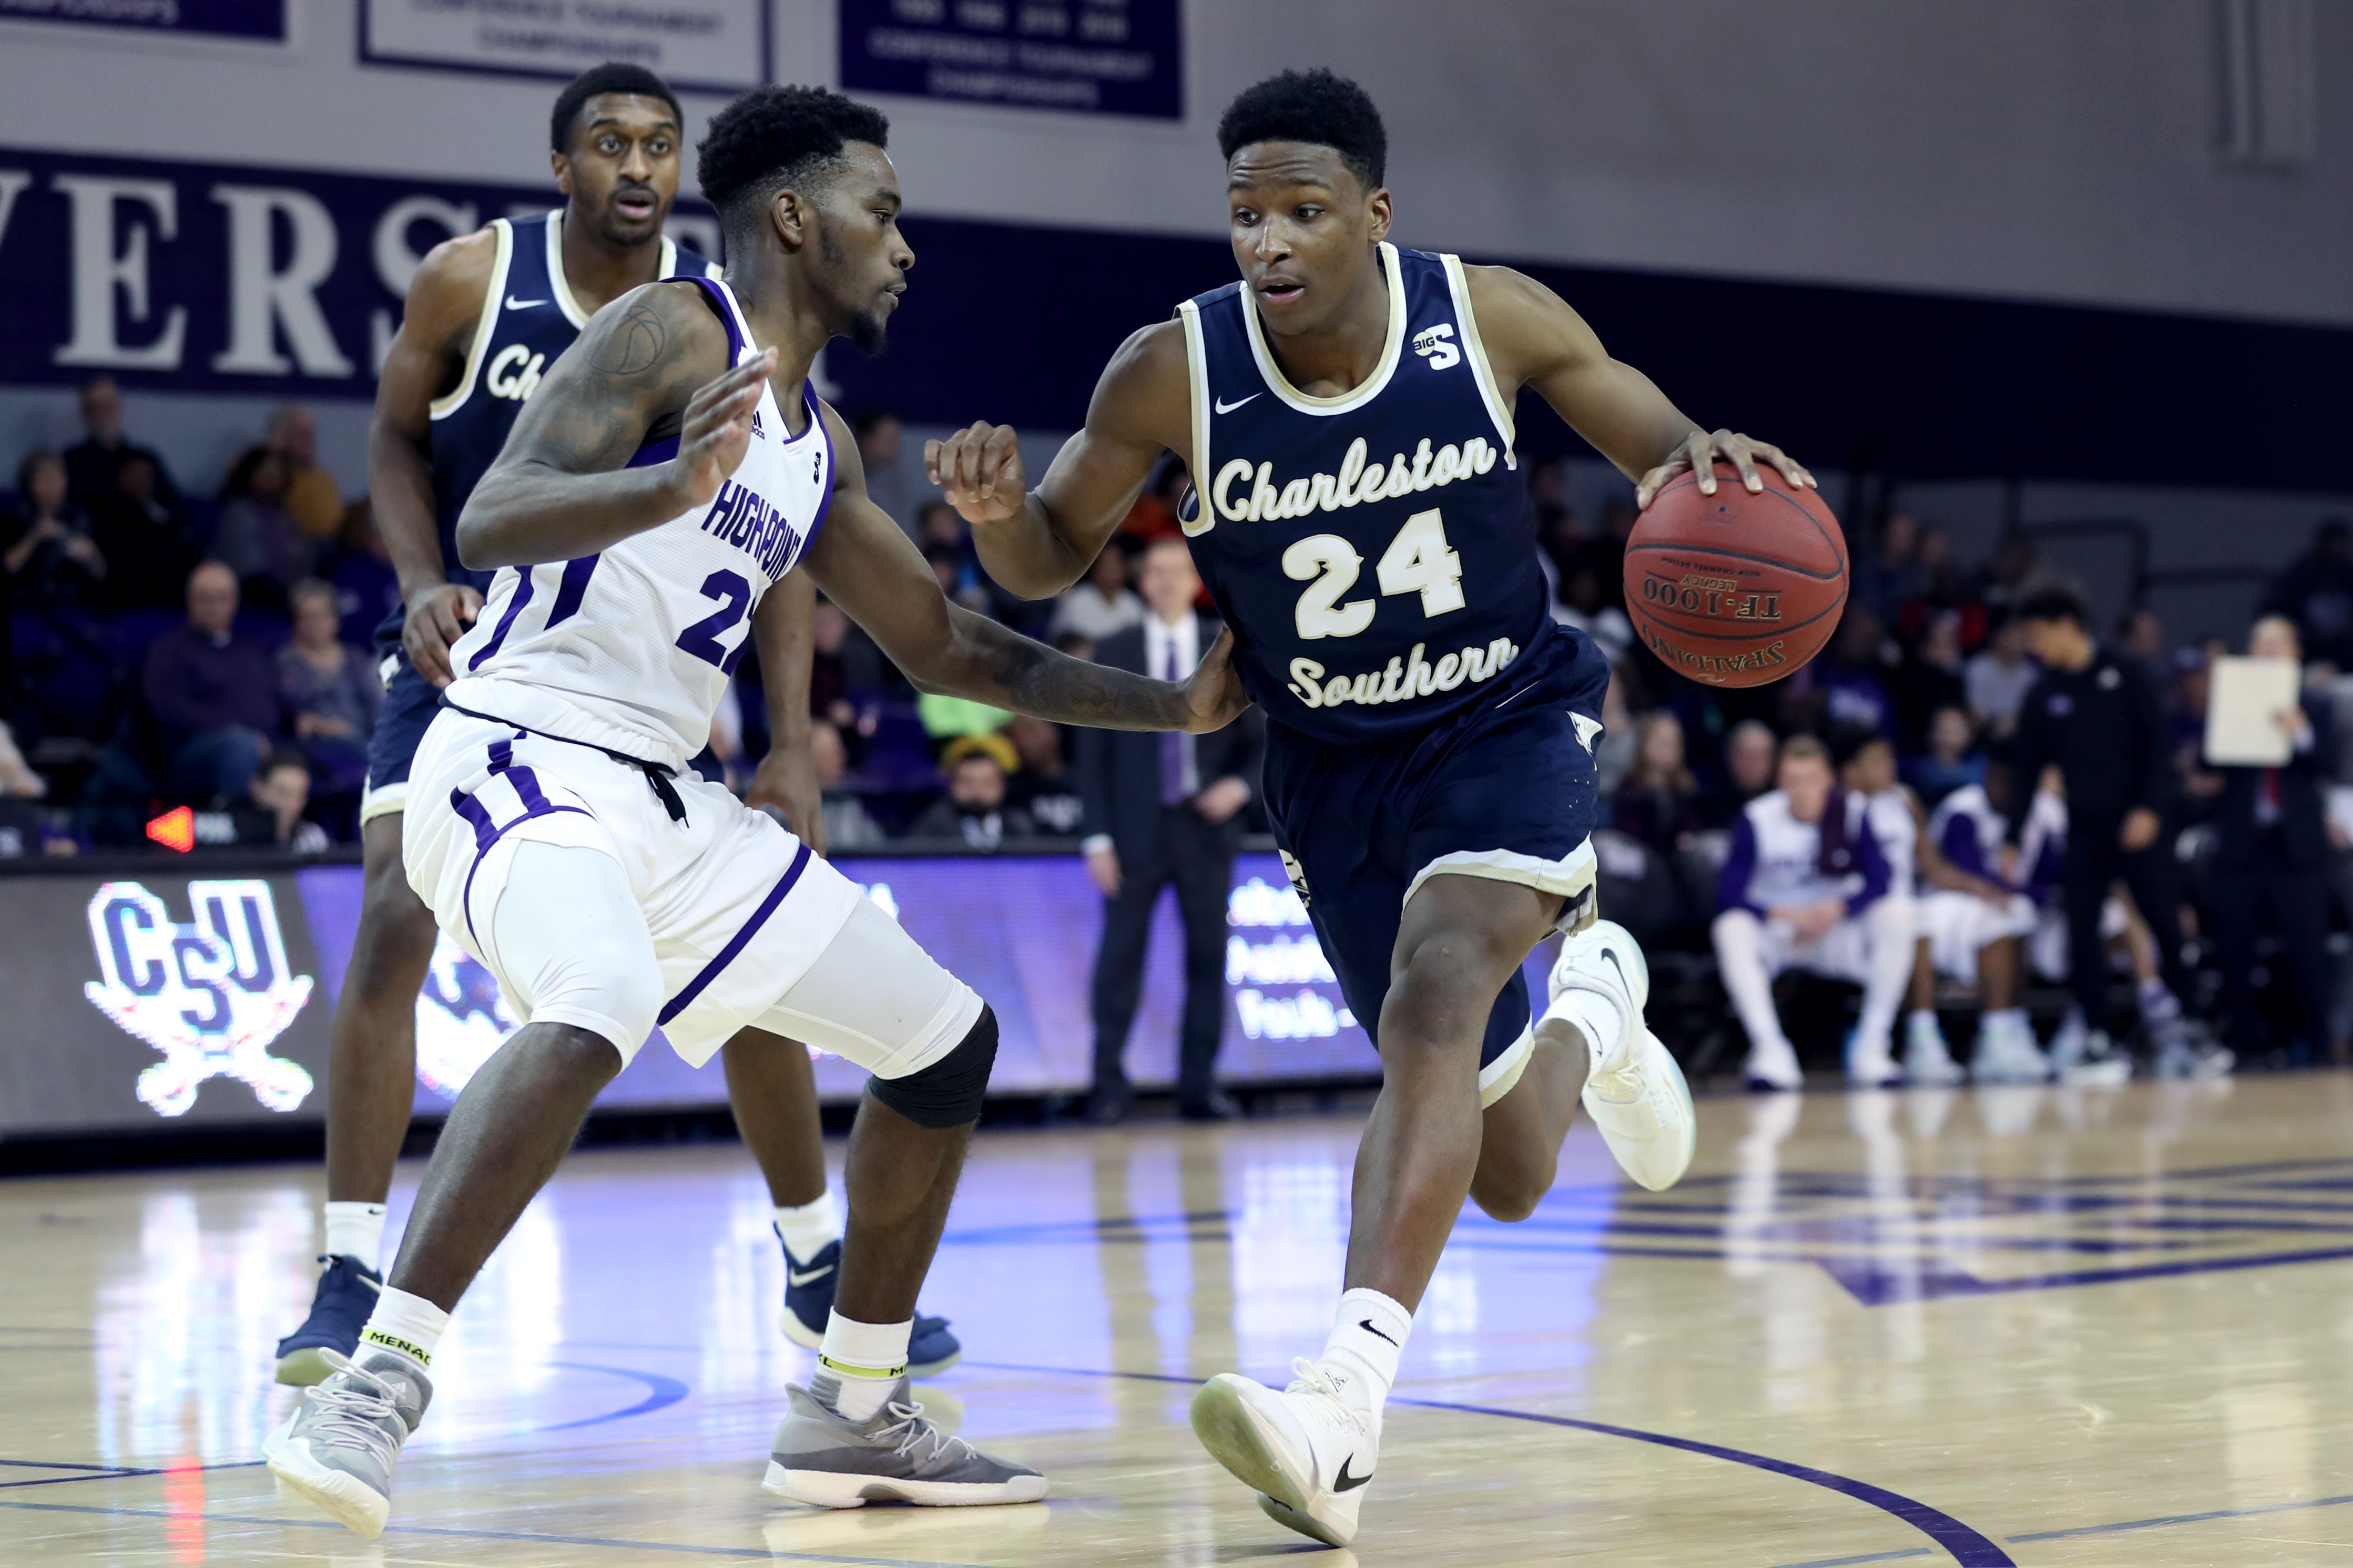 COLLEGE BASKETBALL: JAN 06 Charleston Southern at High Point